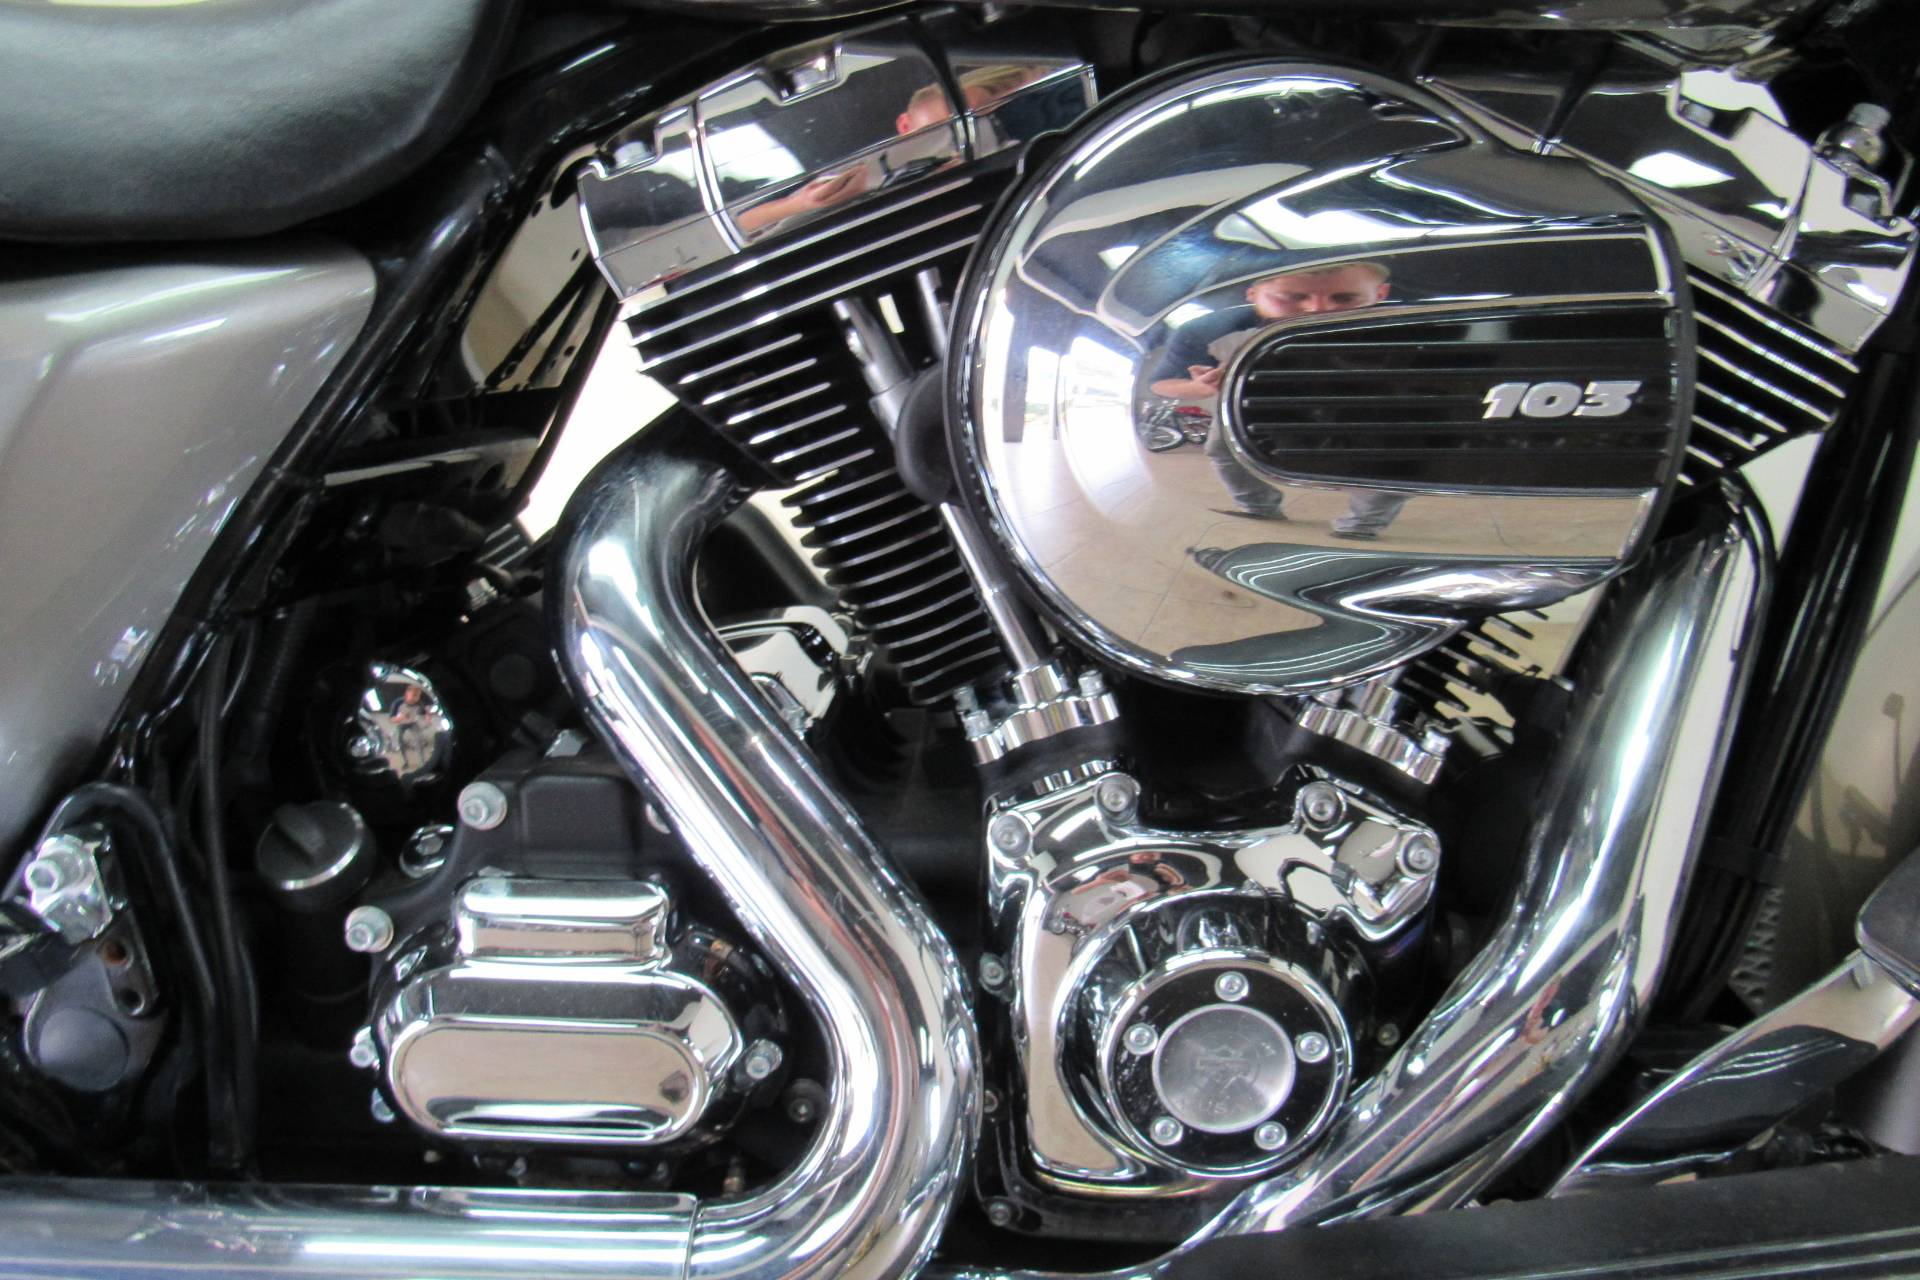 2014 Harley-Davidson Street Glide® Special in Temecula, California - Photo 7